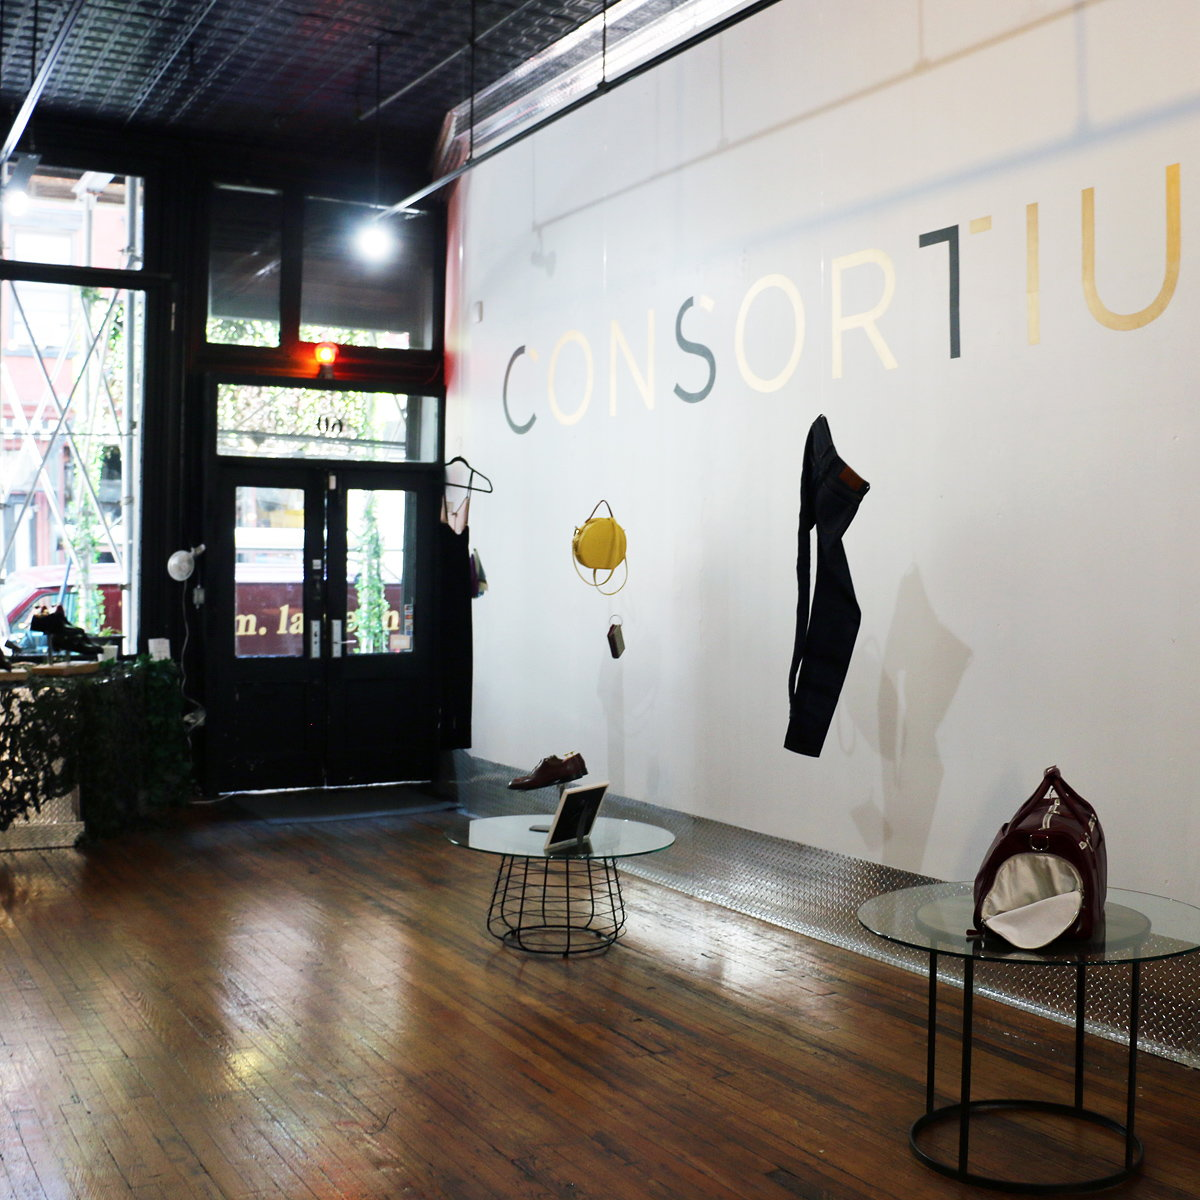 Consortium Opens First Concept Store in NYC